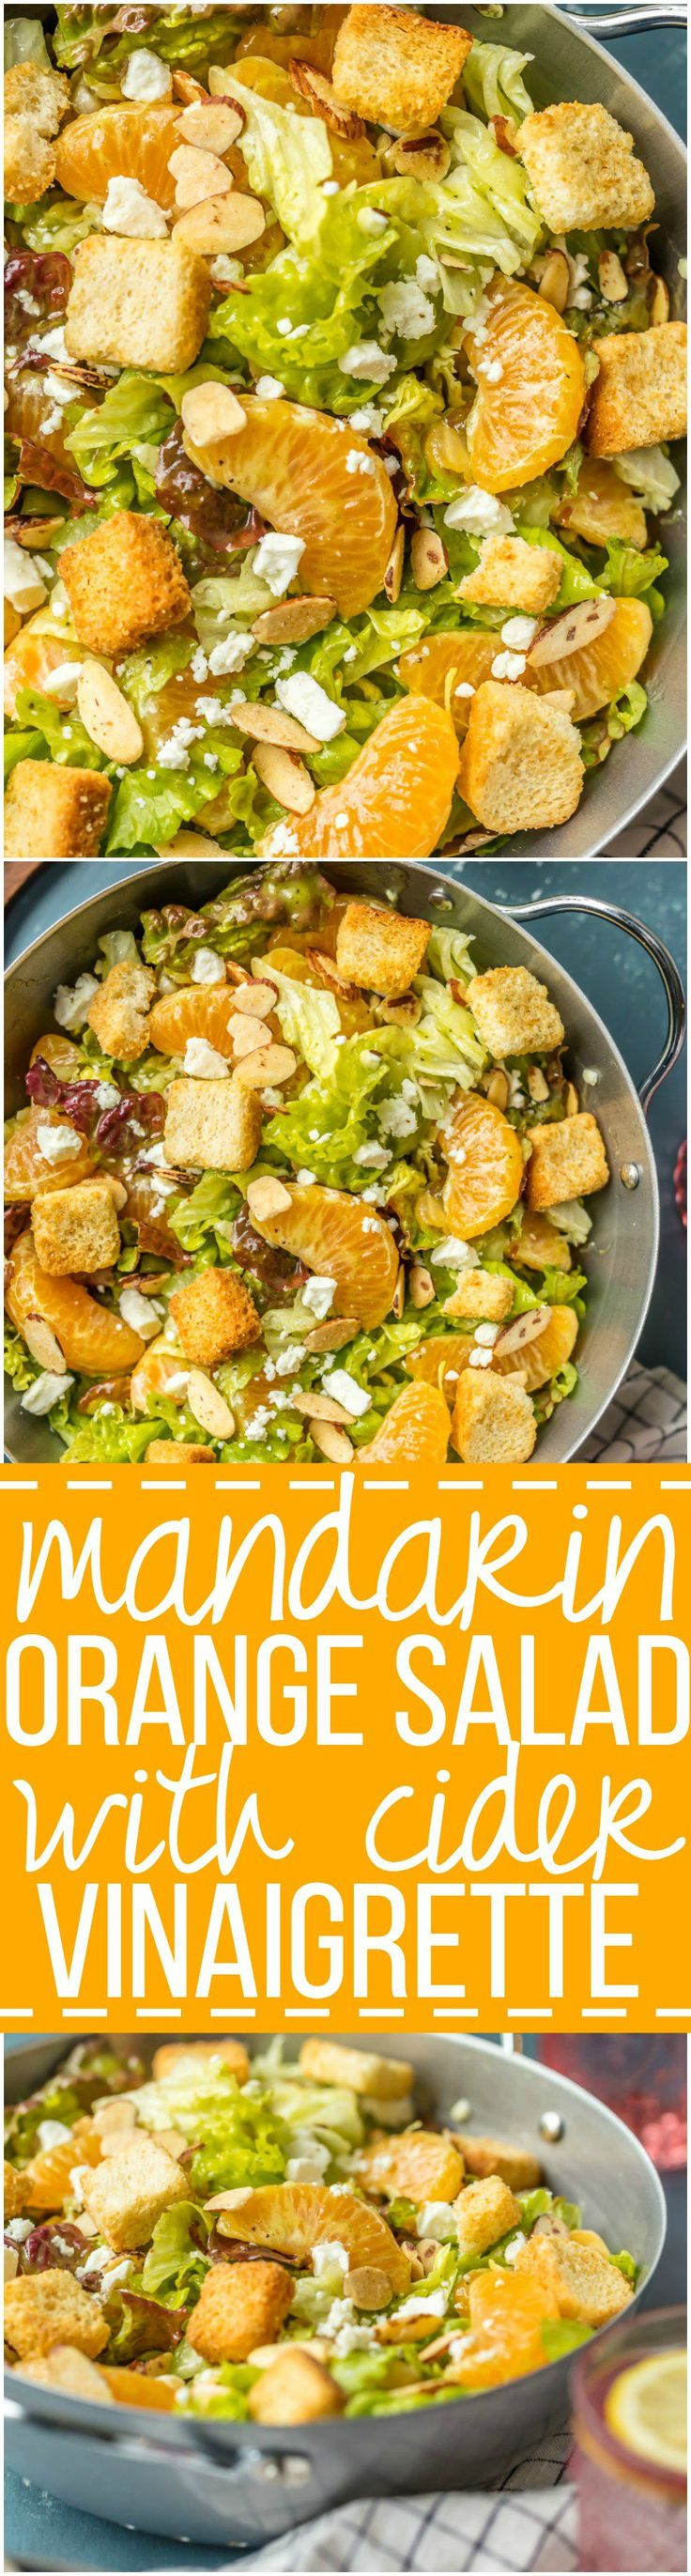 This MANDARIN ORANGE SALAD with ALMONDS AND CIDER VINAIGRETTE has been a favorite in our family forever! SO flavorful and easy. Such a great salad to throw together anytime! via @beckygallhardin